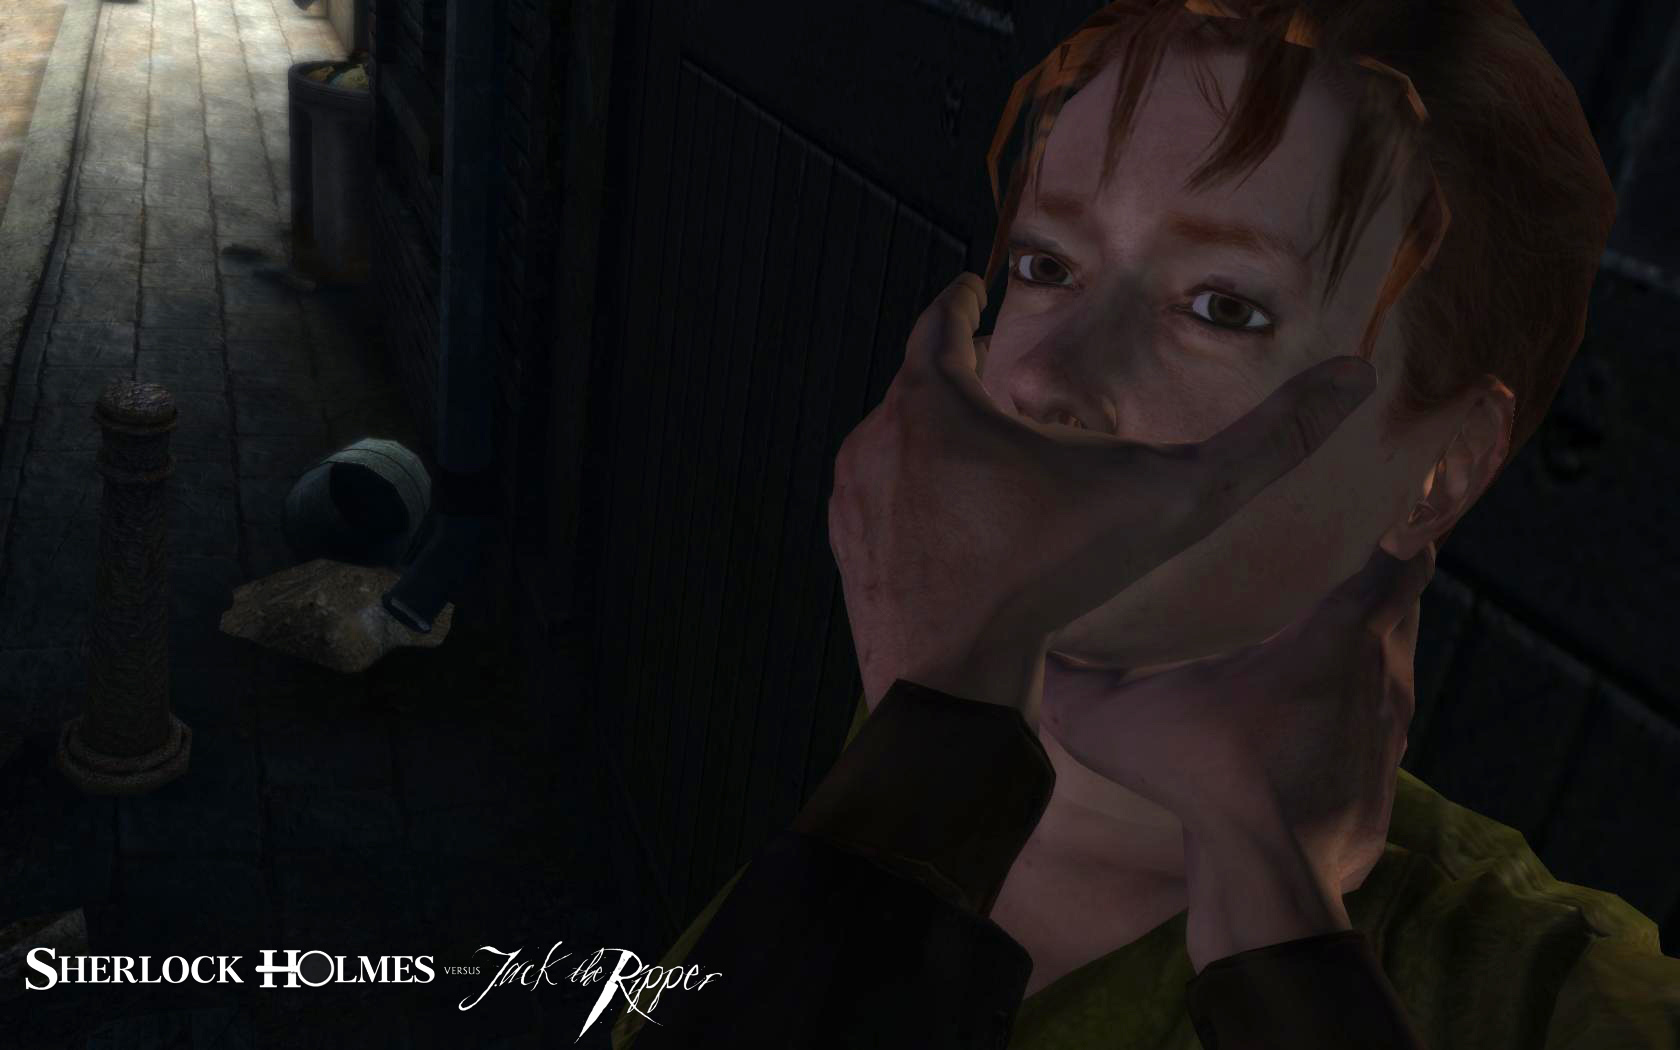 Sherlock Holmes versus Jack the Ripper screenshot